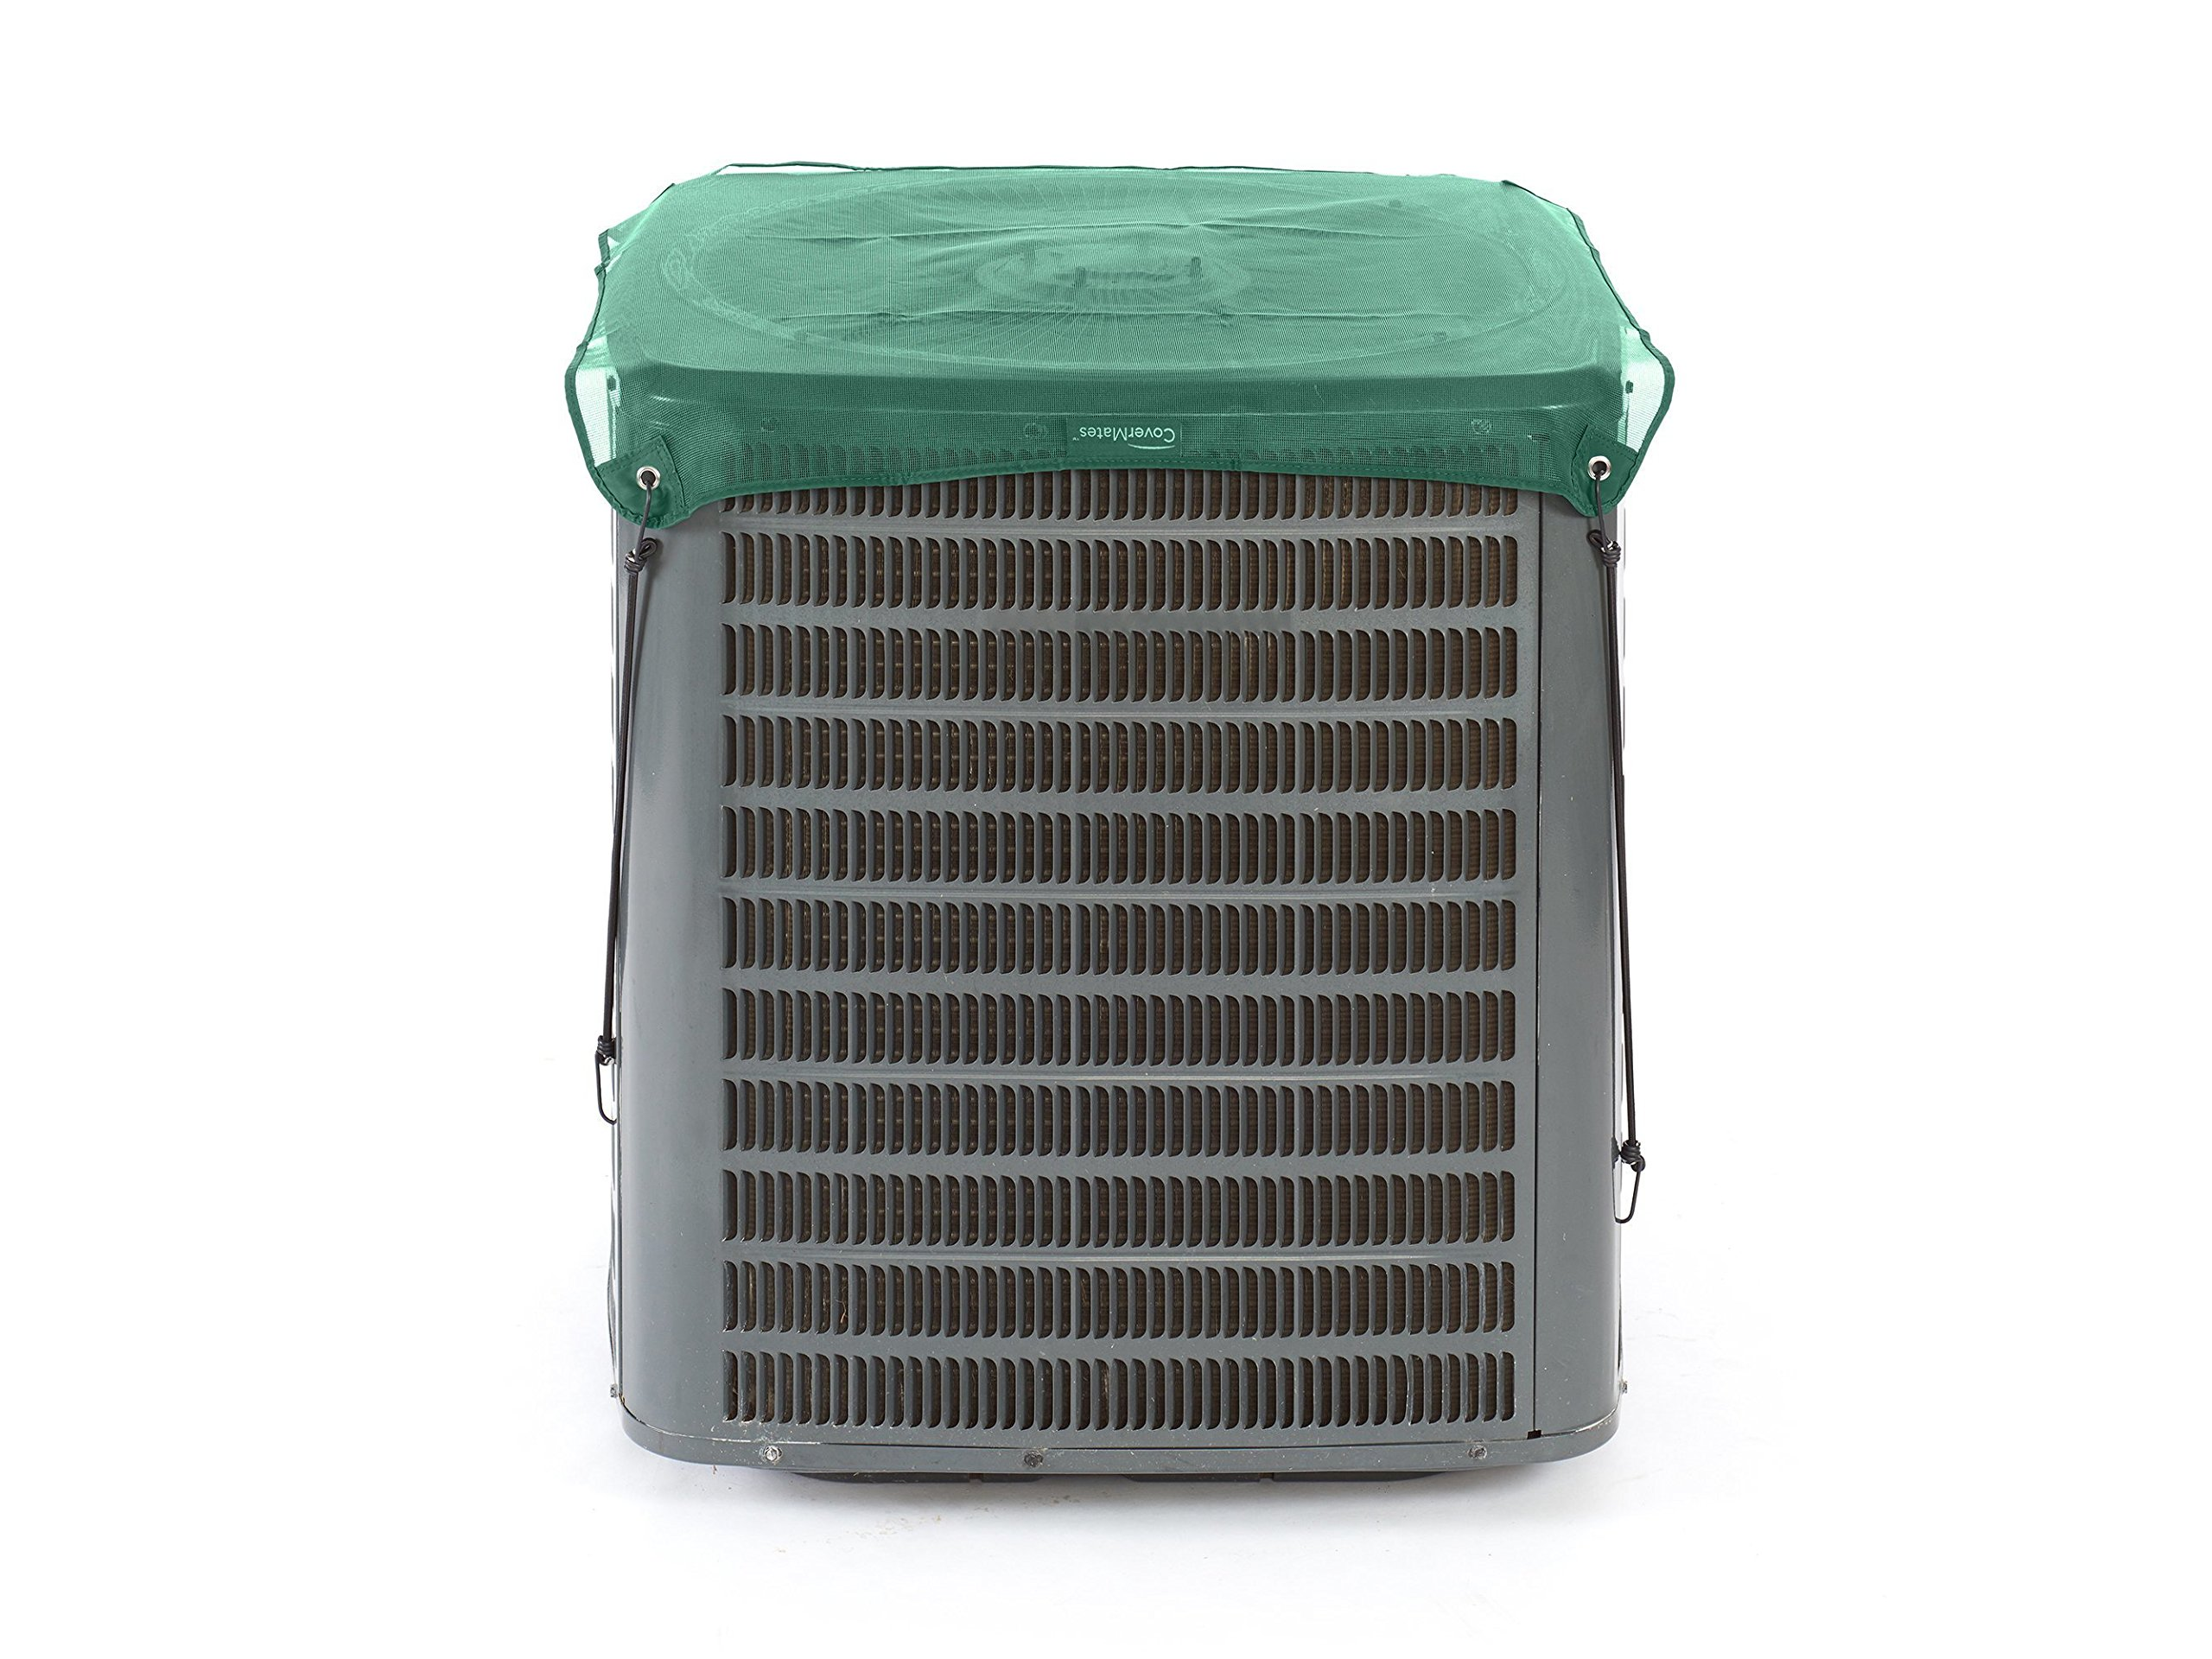 CoverMates - Mesh Top Cover - 24 Width x 24 Depth - Classic - Tight Mesh Design Blocks Debris from Entering - Year-Round Protection - 3X Reinforced Corners - 2 YR Warranty - Water Resistant - Green